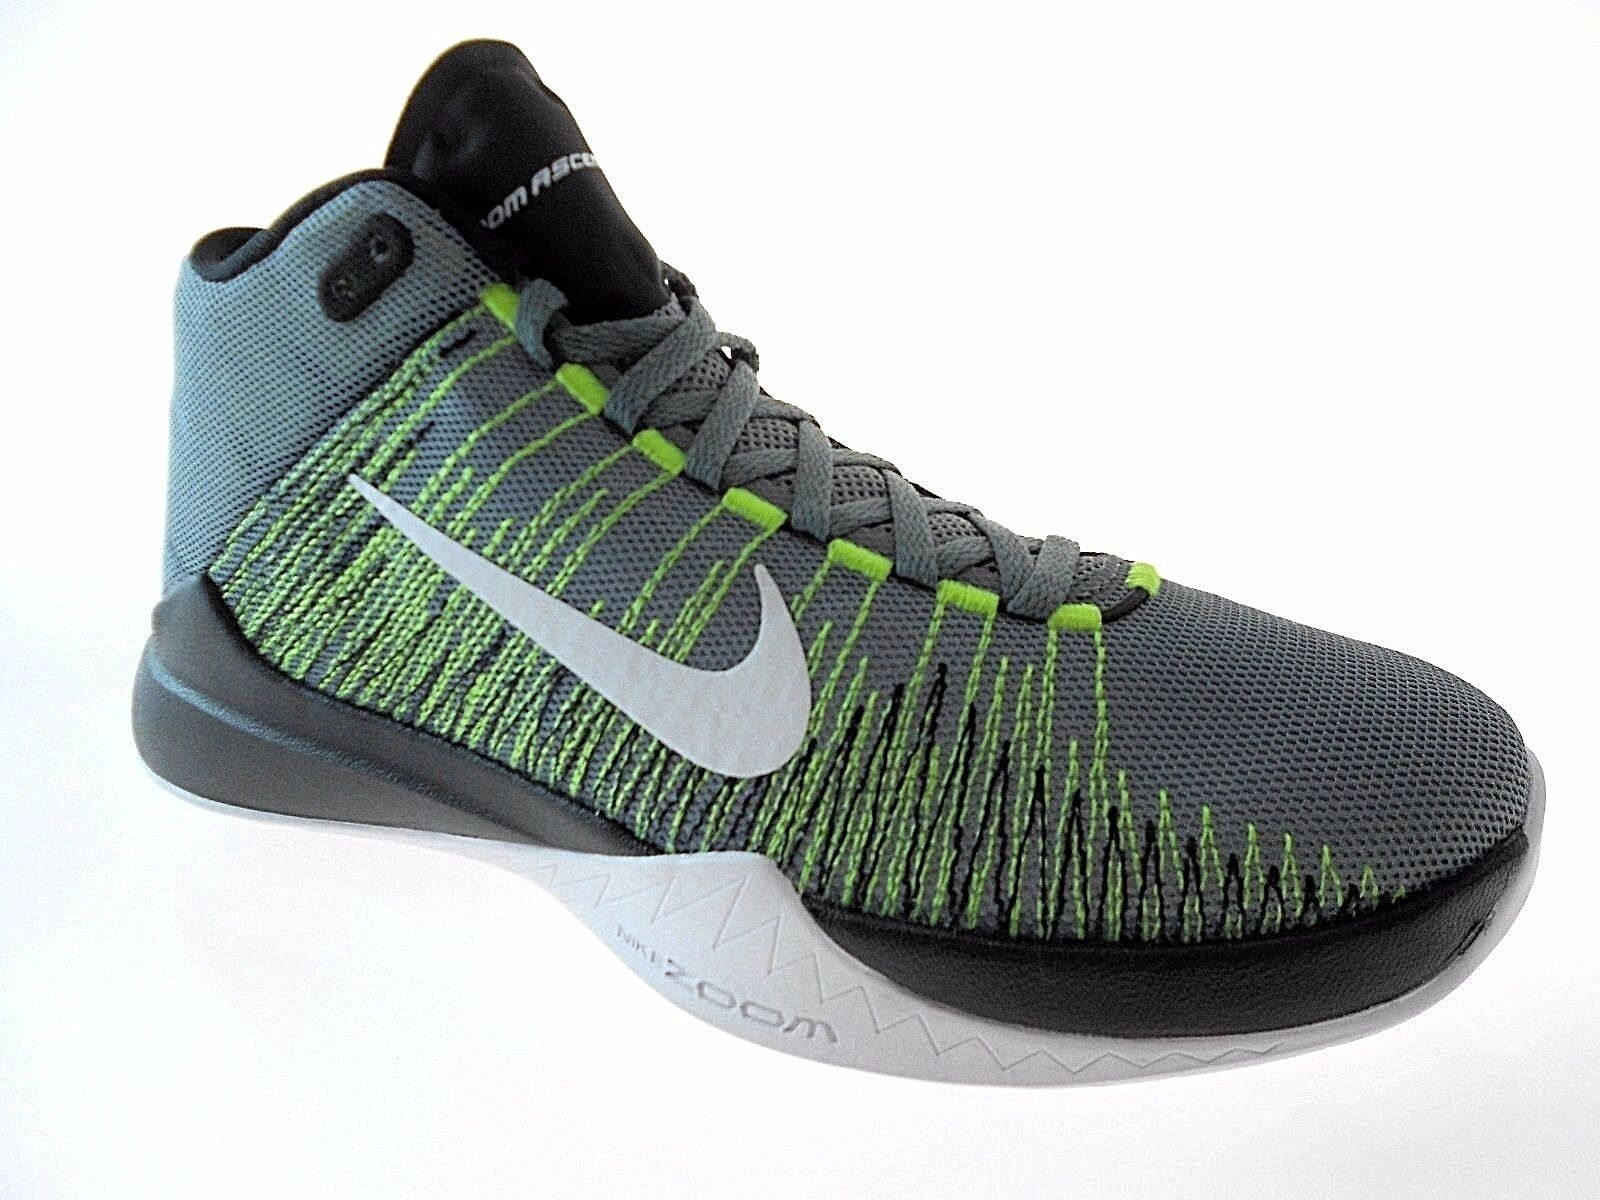 NIKE ZOOM ASCENTION MEN'S GREY/VOLT BASKETBALL SHOES sz 10,